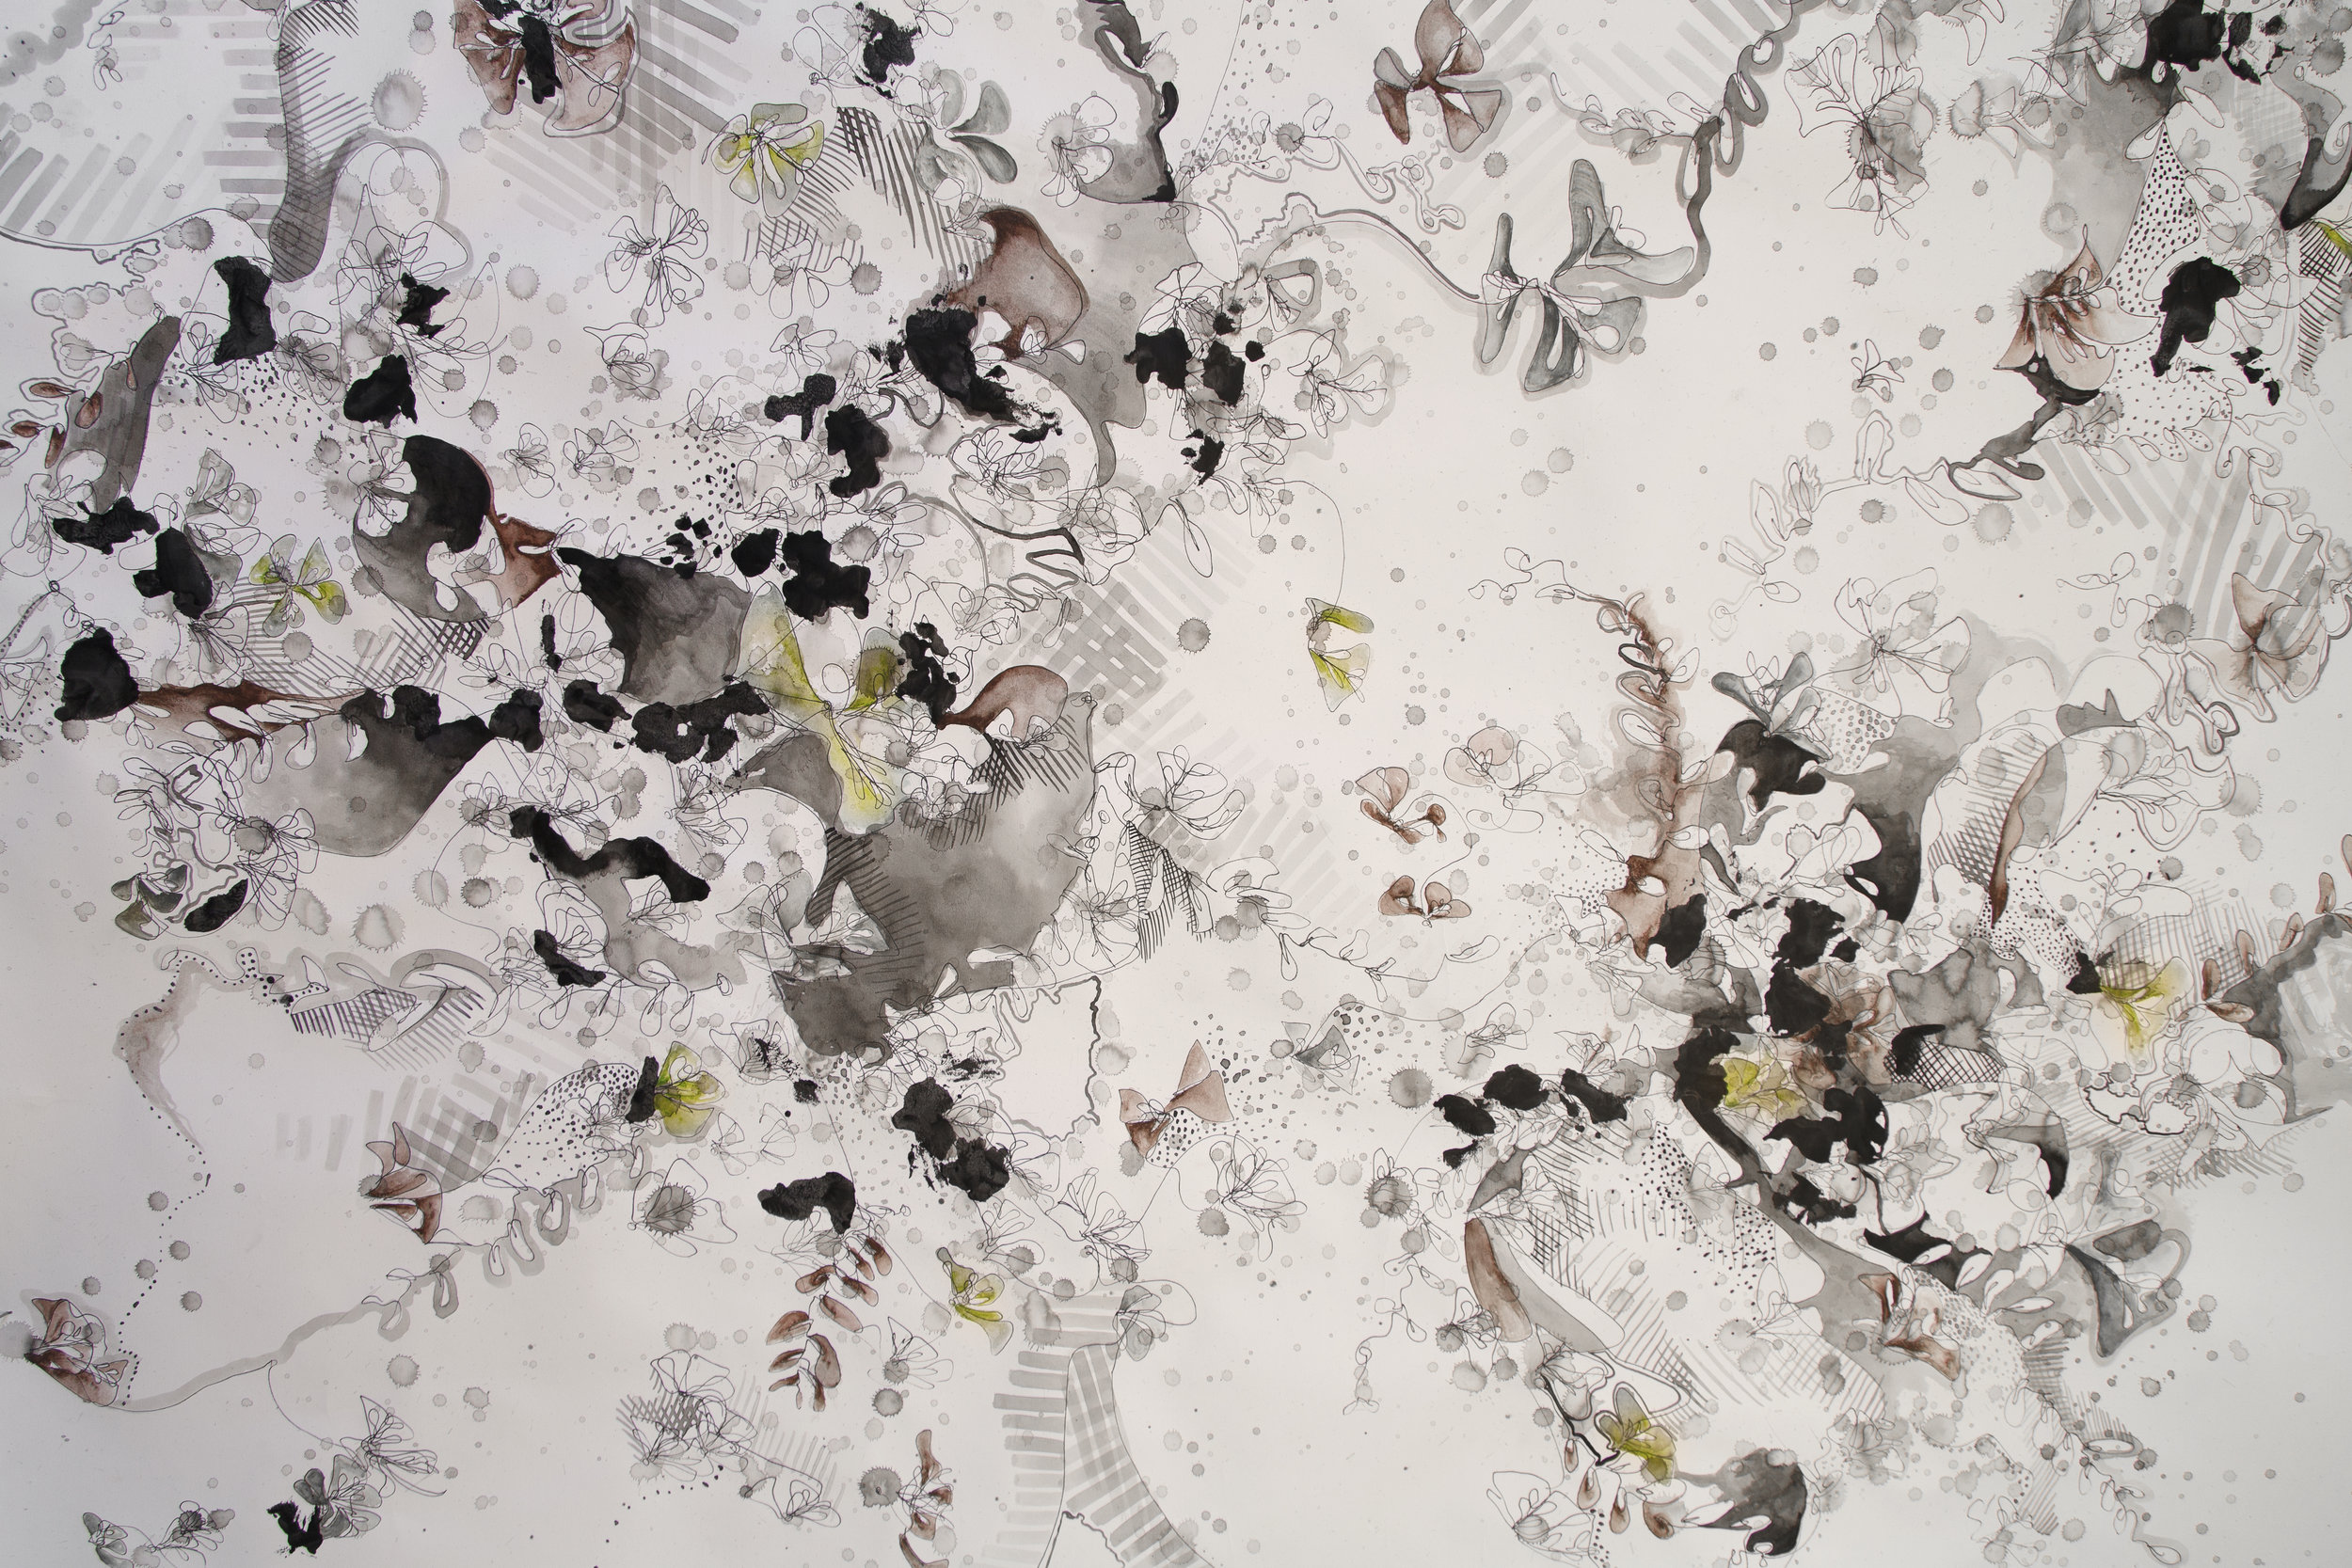 Growing - In my abstract works I aim to create an overall sensation for the viewer, whether it be by scale, distortion, or immersion.The scale of the page in Growing (2015) creates a sense of wild overgrowth; the viewer is surrounded by layers of vegetation, ink splatters, and patterns.